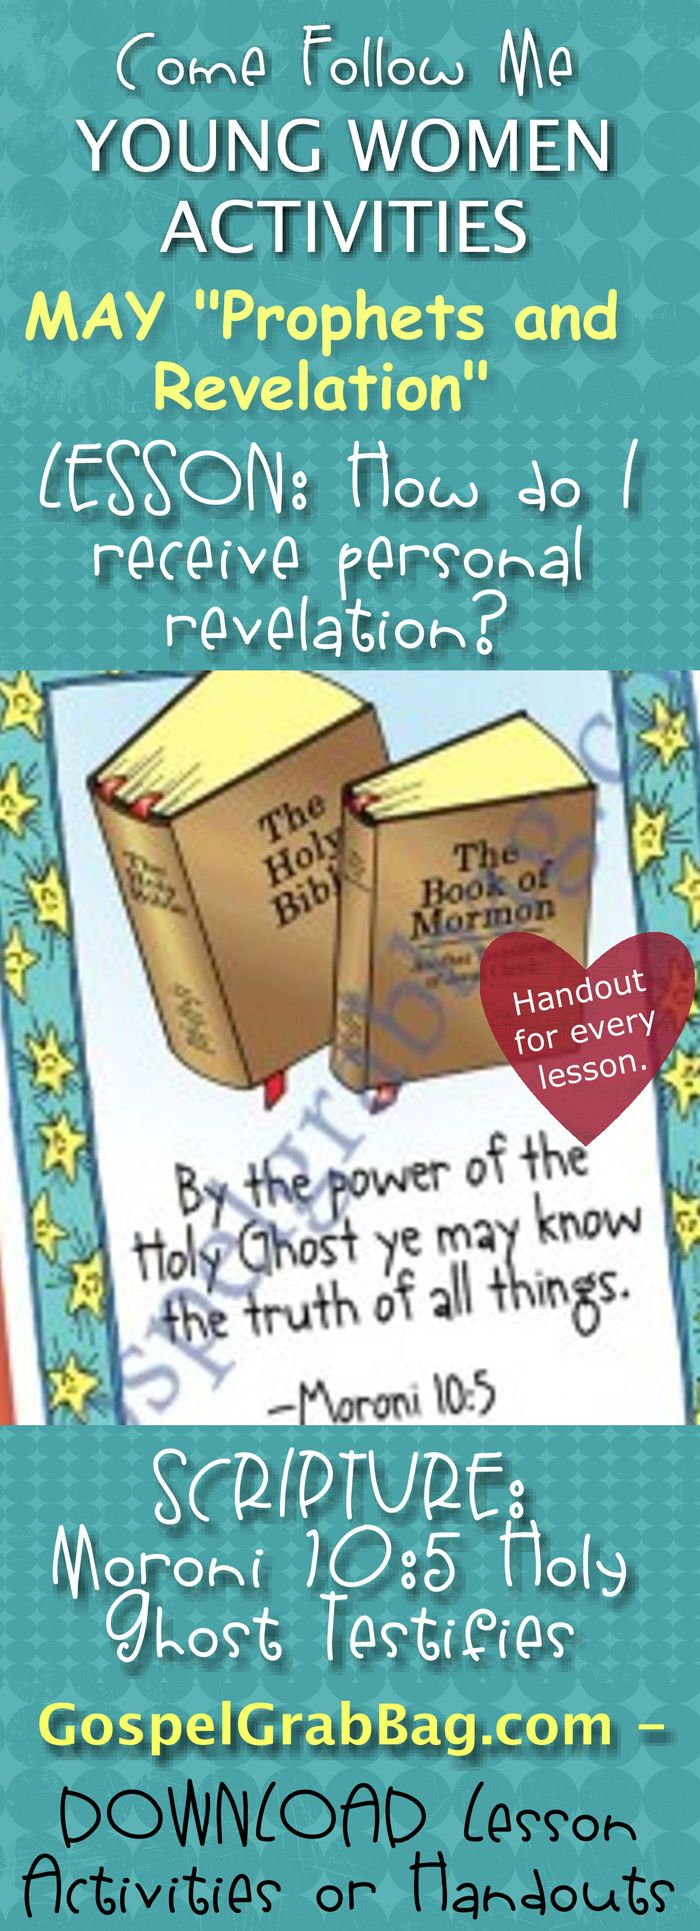 """REVELATION - PRAYER: Come Follow Me – LDS Young Women Activities, MAY Theme: """"Prophets and Revelation"""", LESSON: How do I receive personal revelation? Lesson handouts and activities, SCRIPTURE POSTER / CARDS: Moroni 10:5 – The Holy Ghost Testifies of Truth, download from gospelgrabbag.com"""